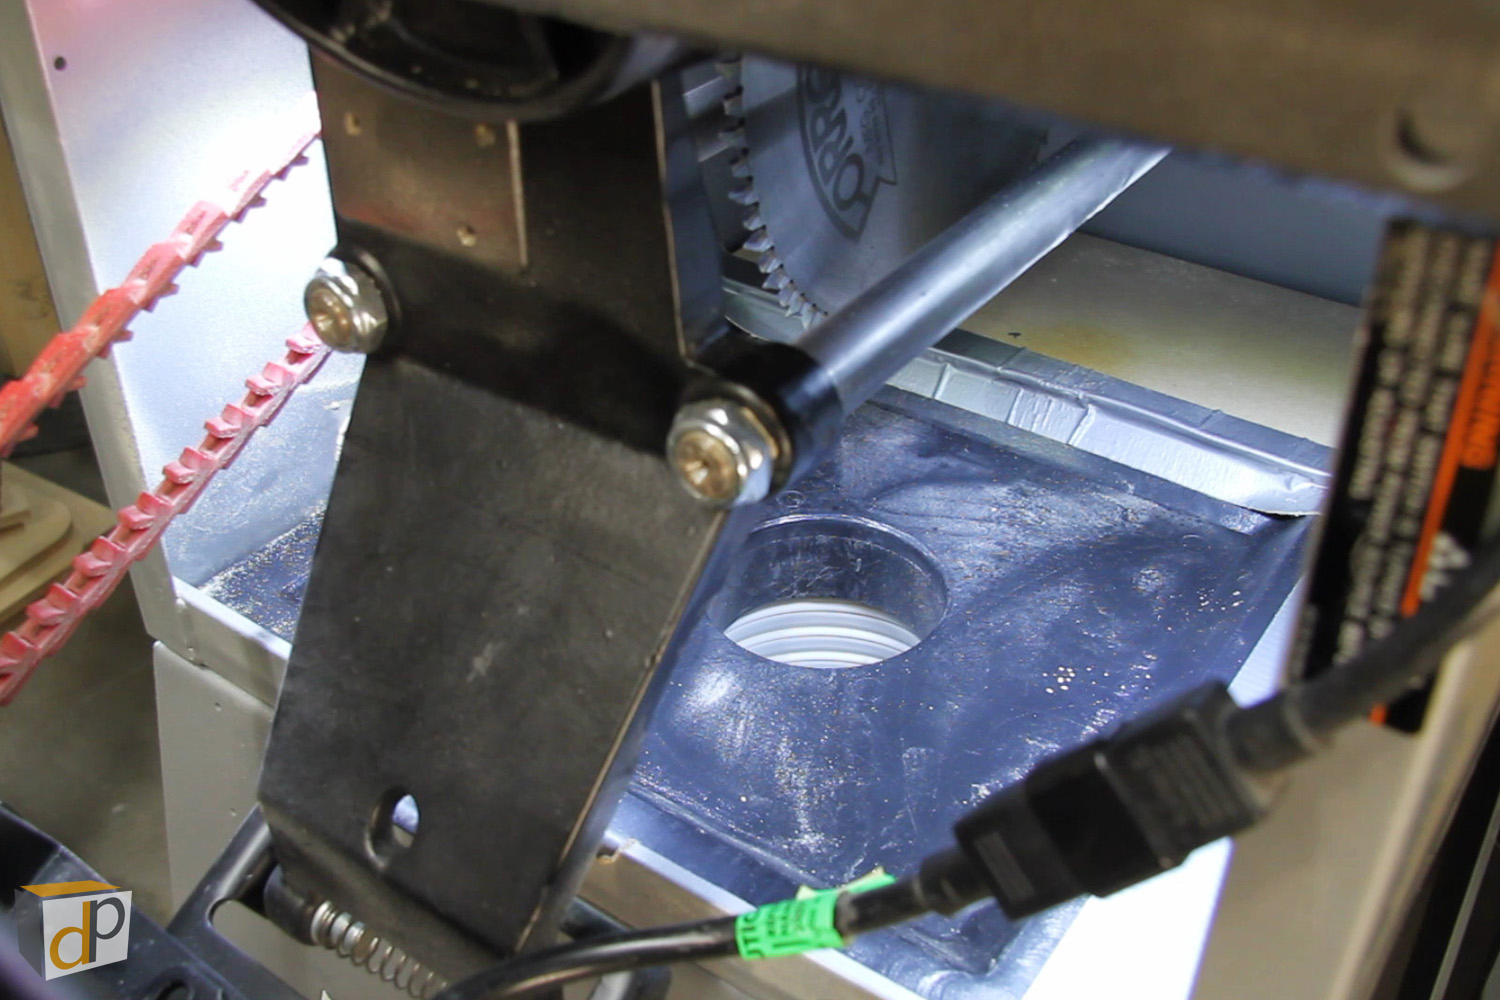 Table saw dust collection upgrade #1 - Add a dust port